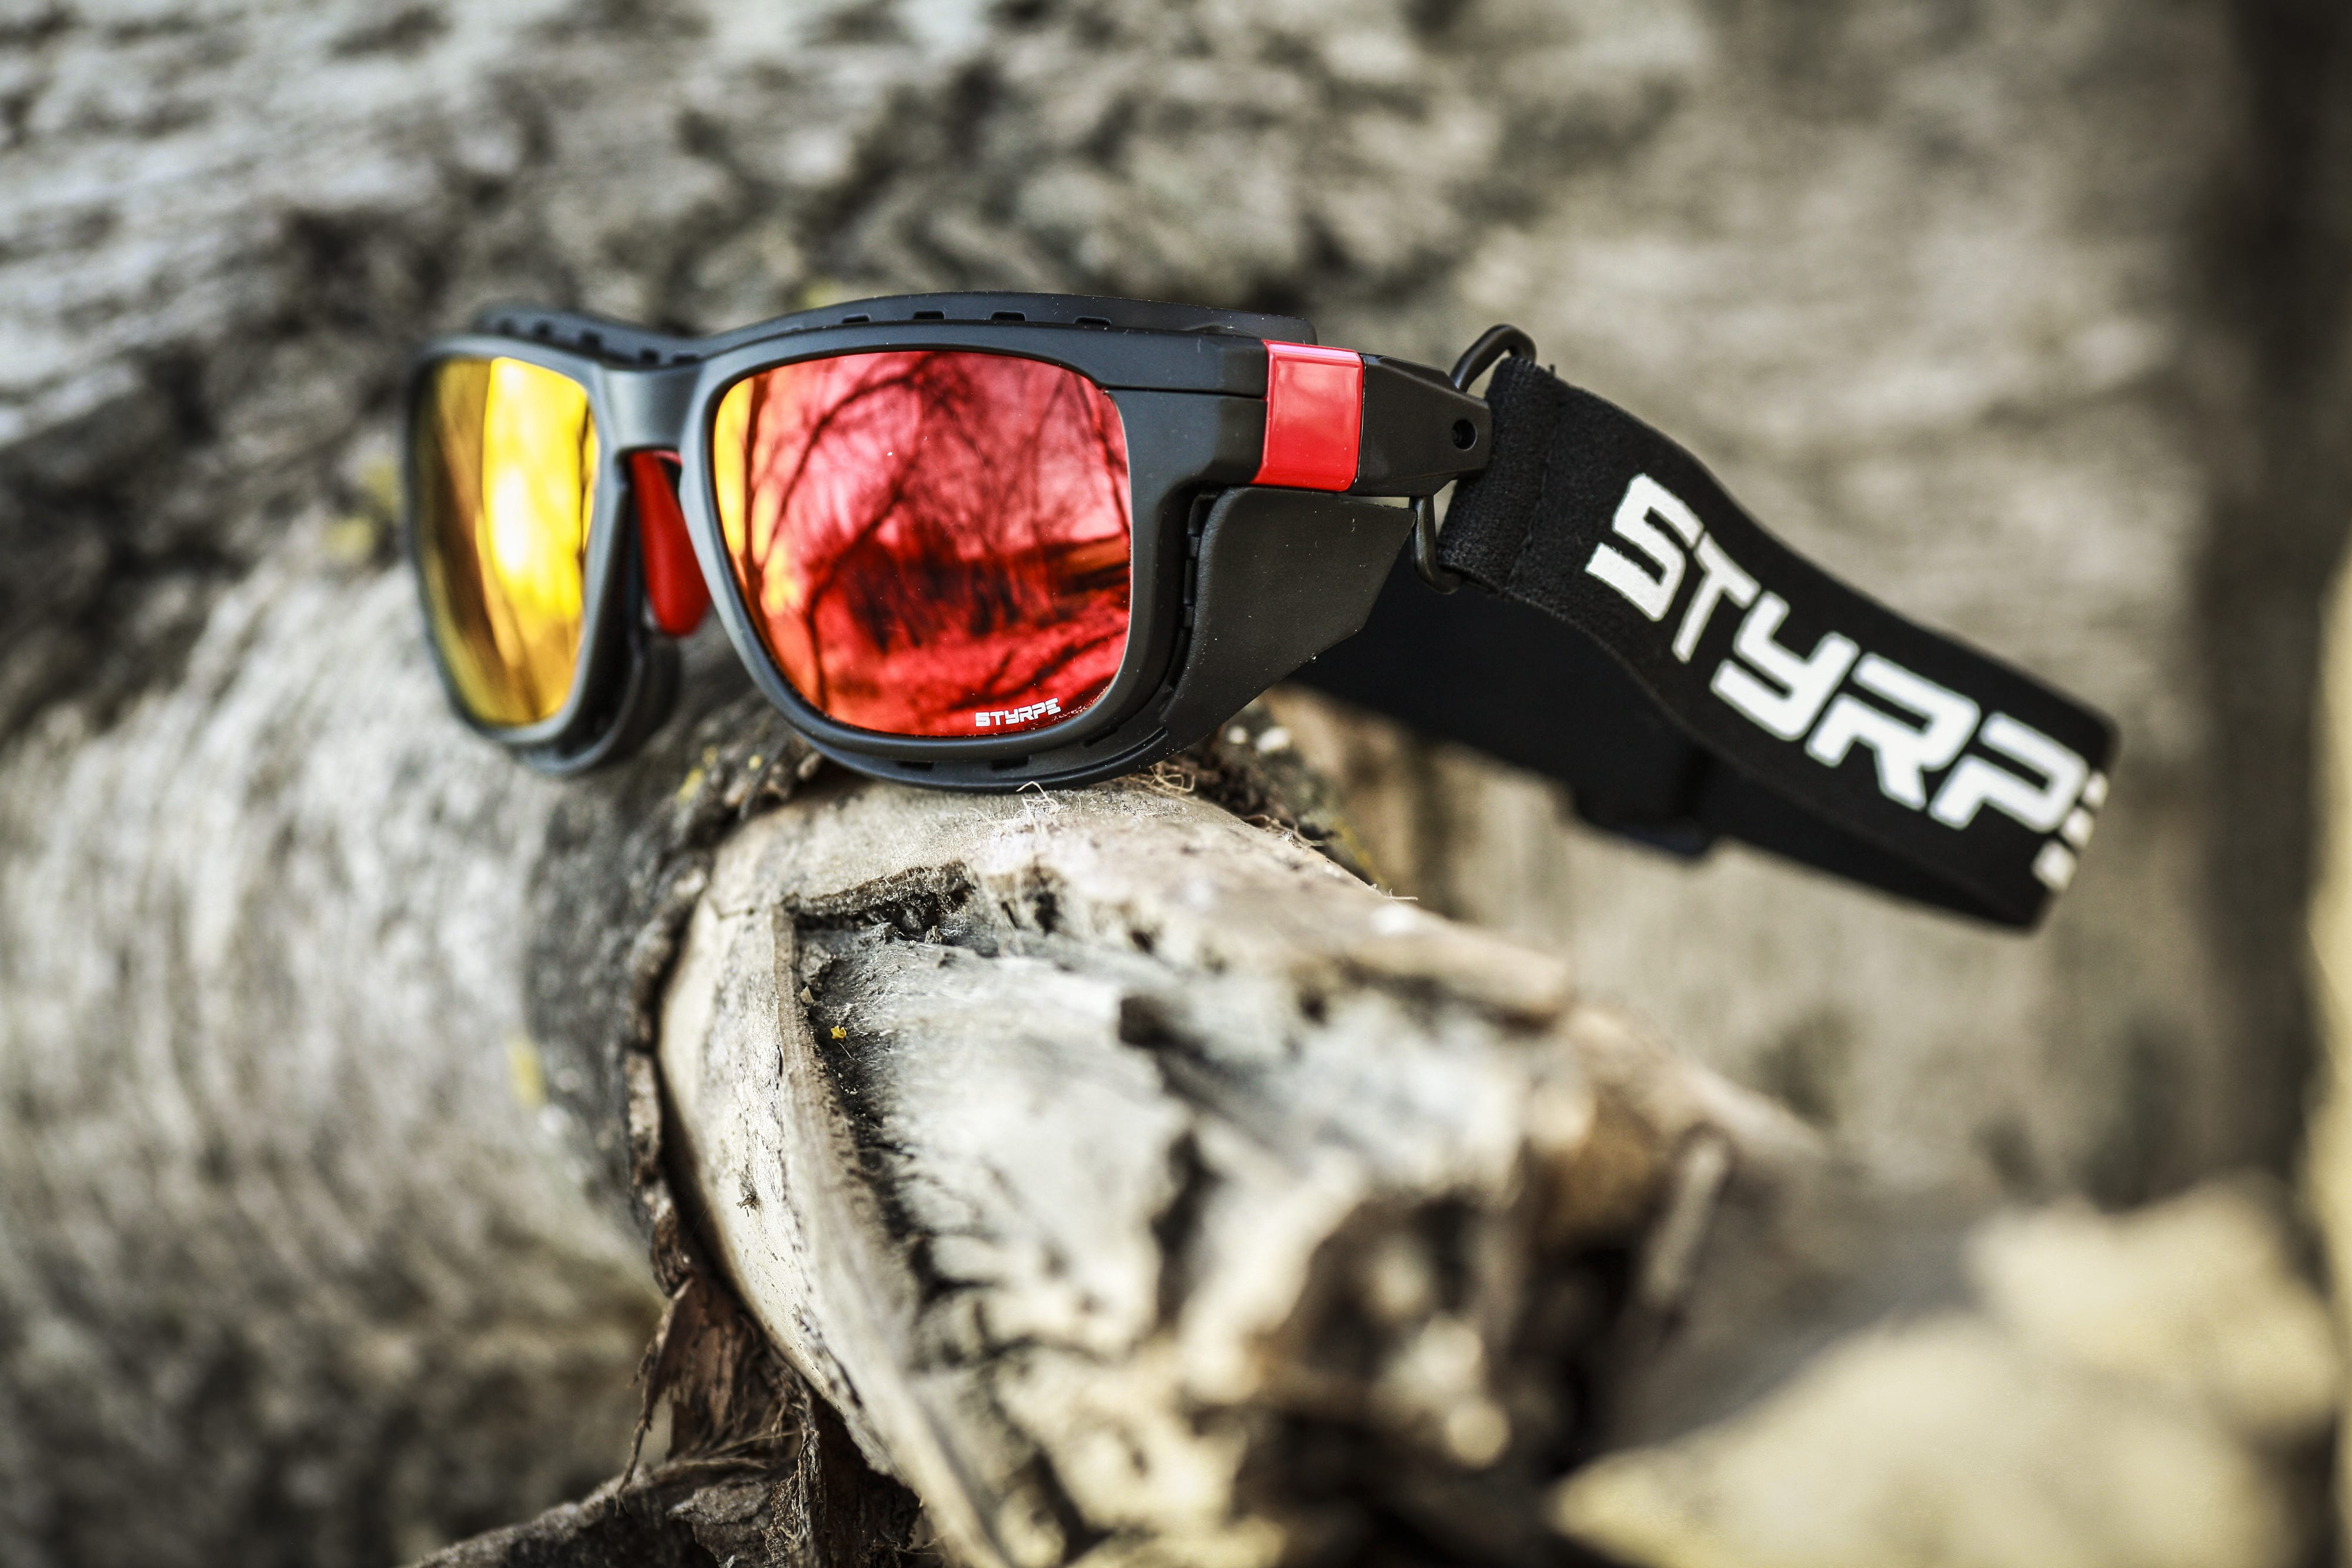 Styrpe Sty 01 Black/Red